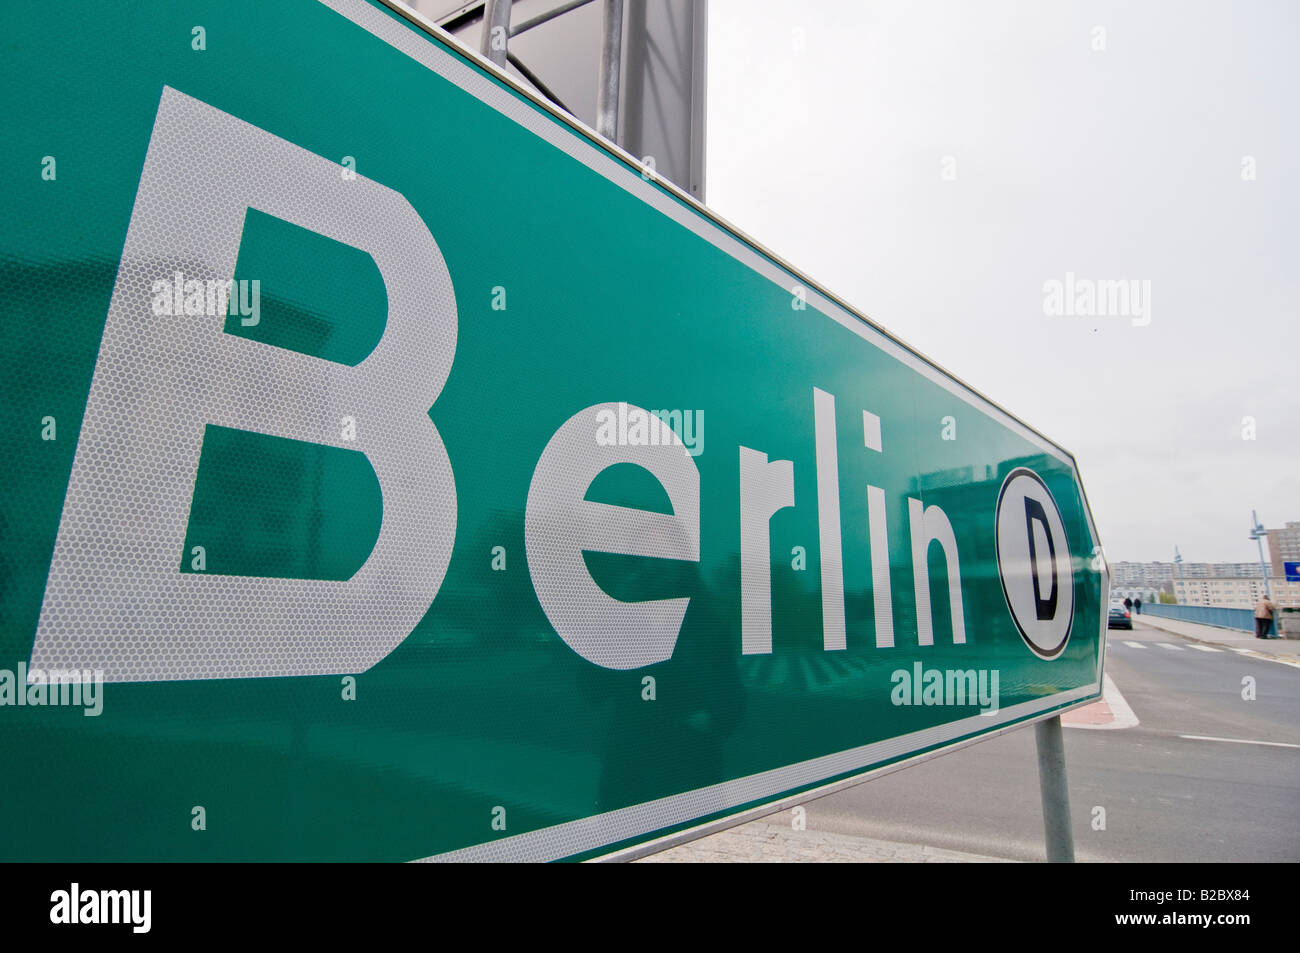 Road sign pointing towards Berlin, Stubice, Poland, Europe - Stock Image